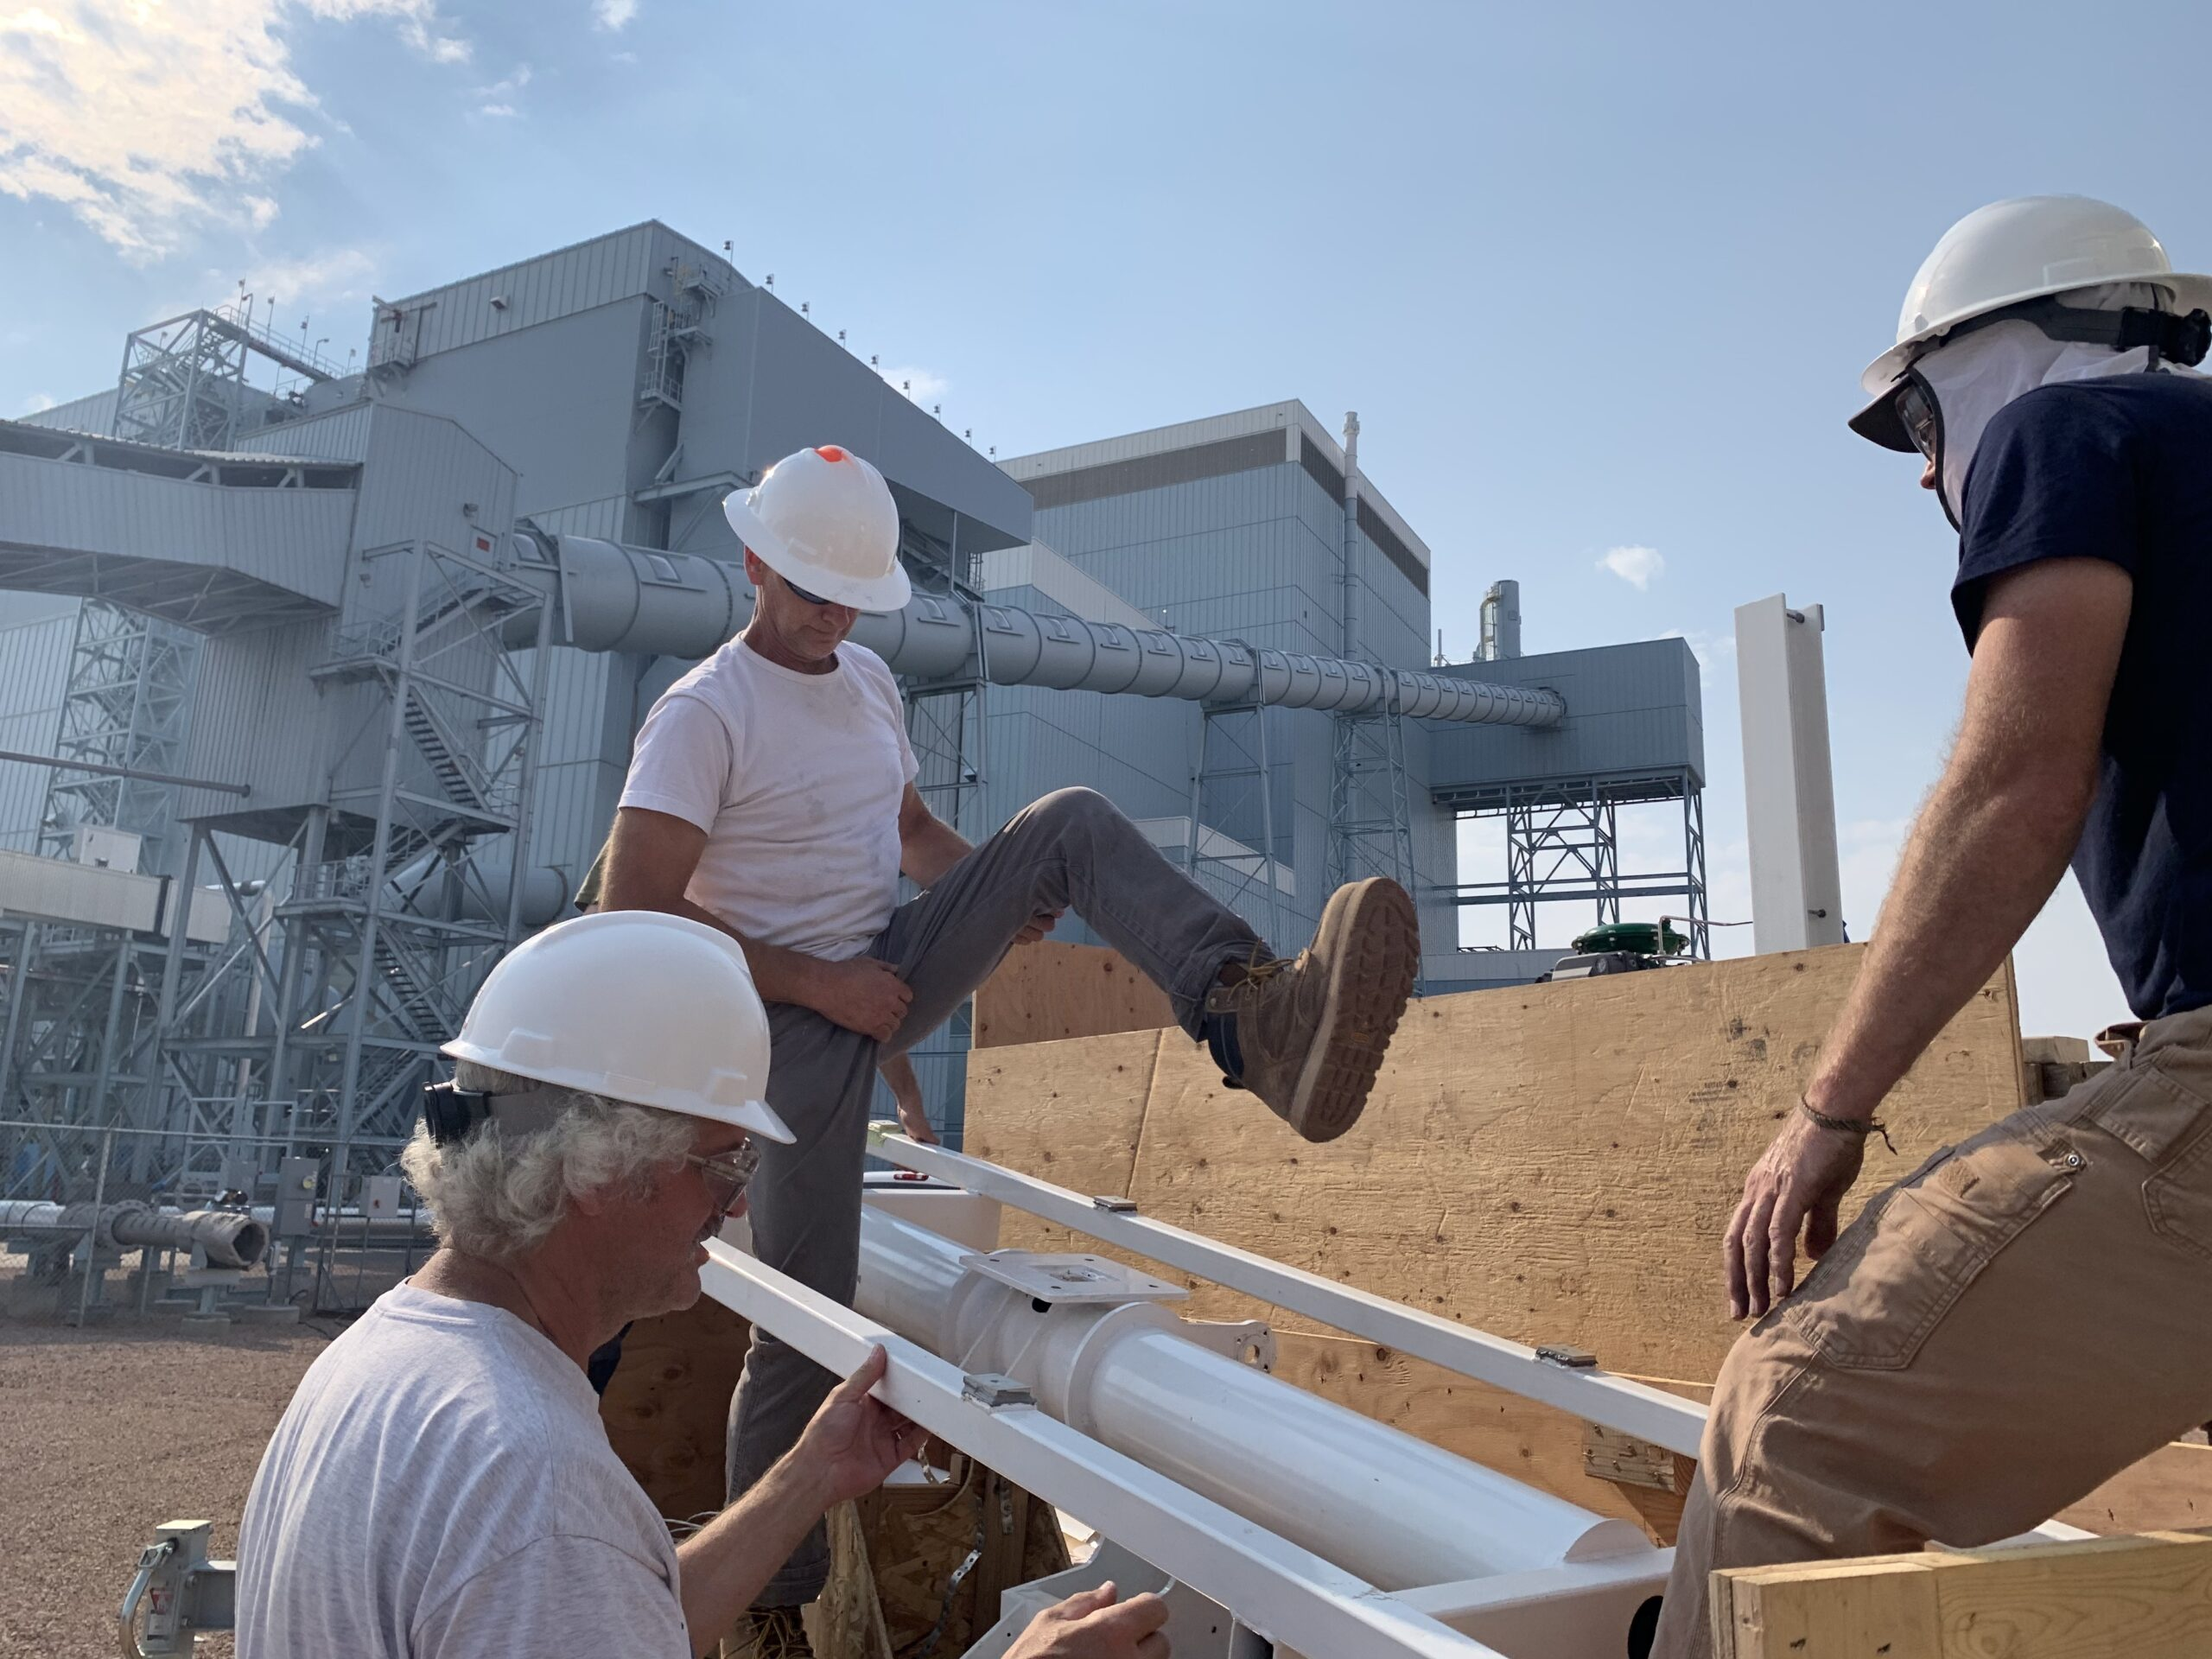 (From Left To Right) Brian Bowman, Jason Salfi, and Huck Milton removing part of the solar tracker from the trailer